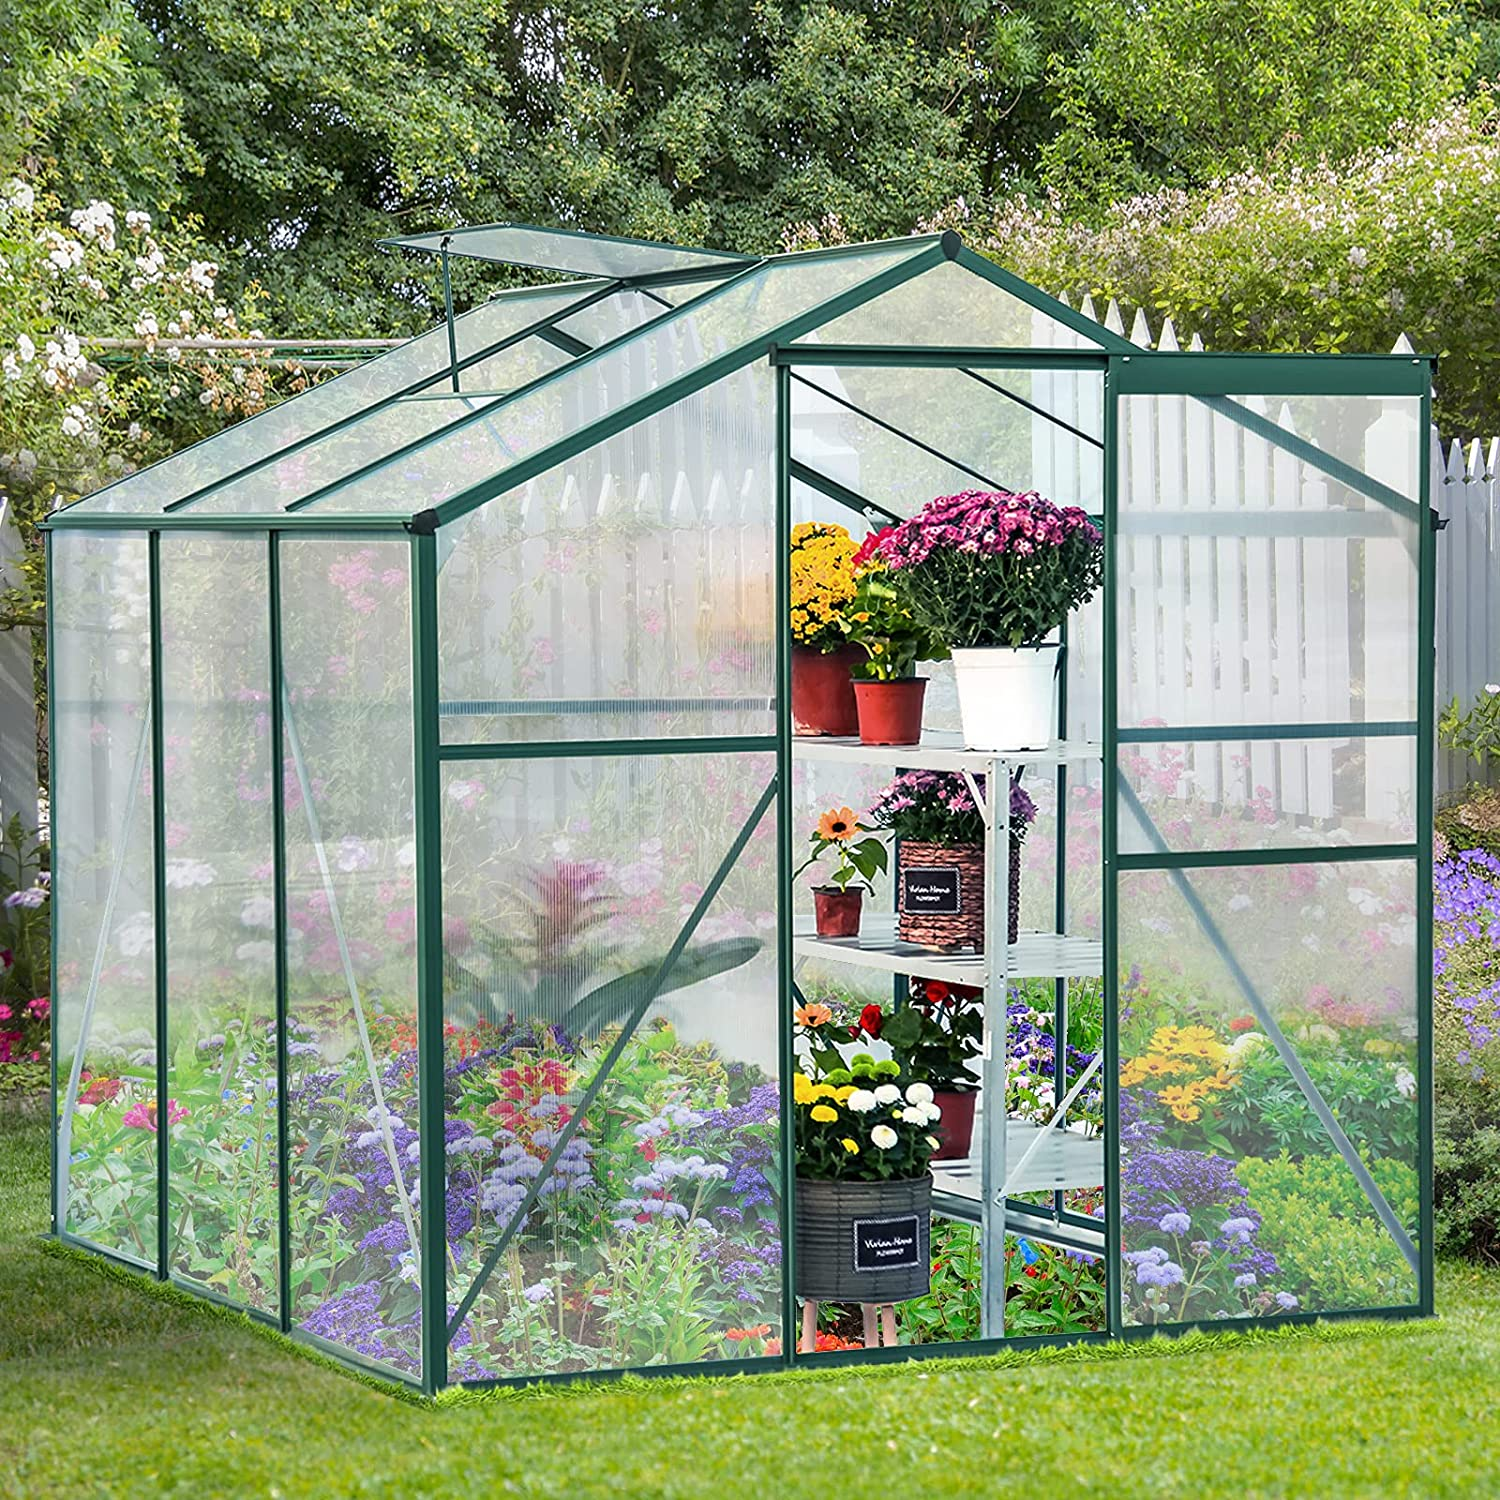 Review of U-MAX Polycarbonate Outdoor Greenhouse 6'(L) x6'(W) x6.6'(H)